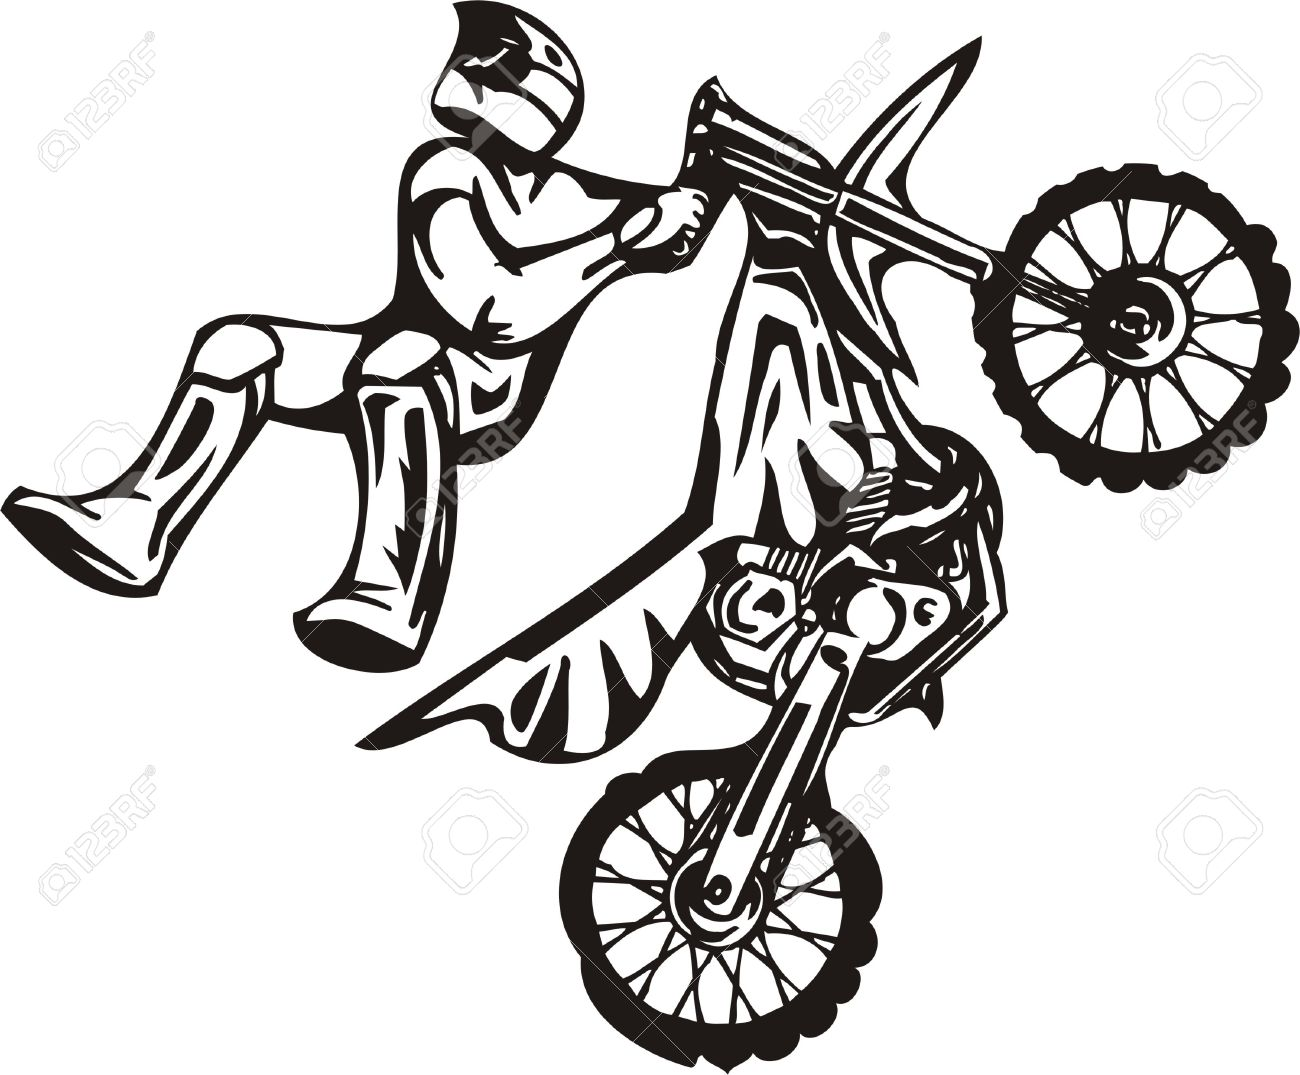 biker on motorcycle vector illustration royalty free cliparts